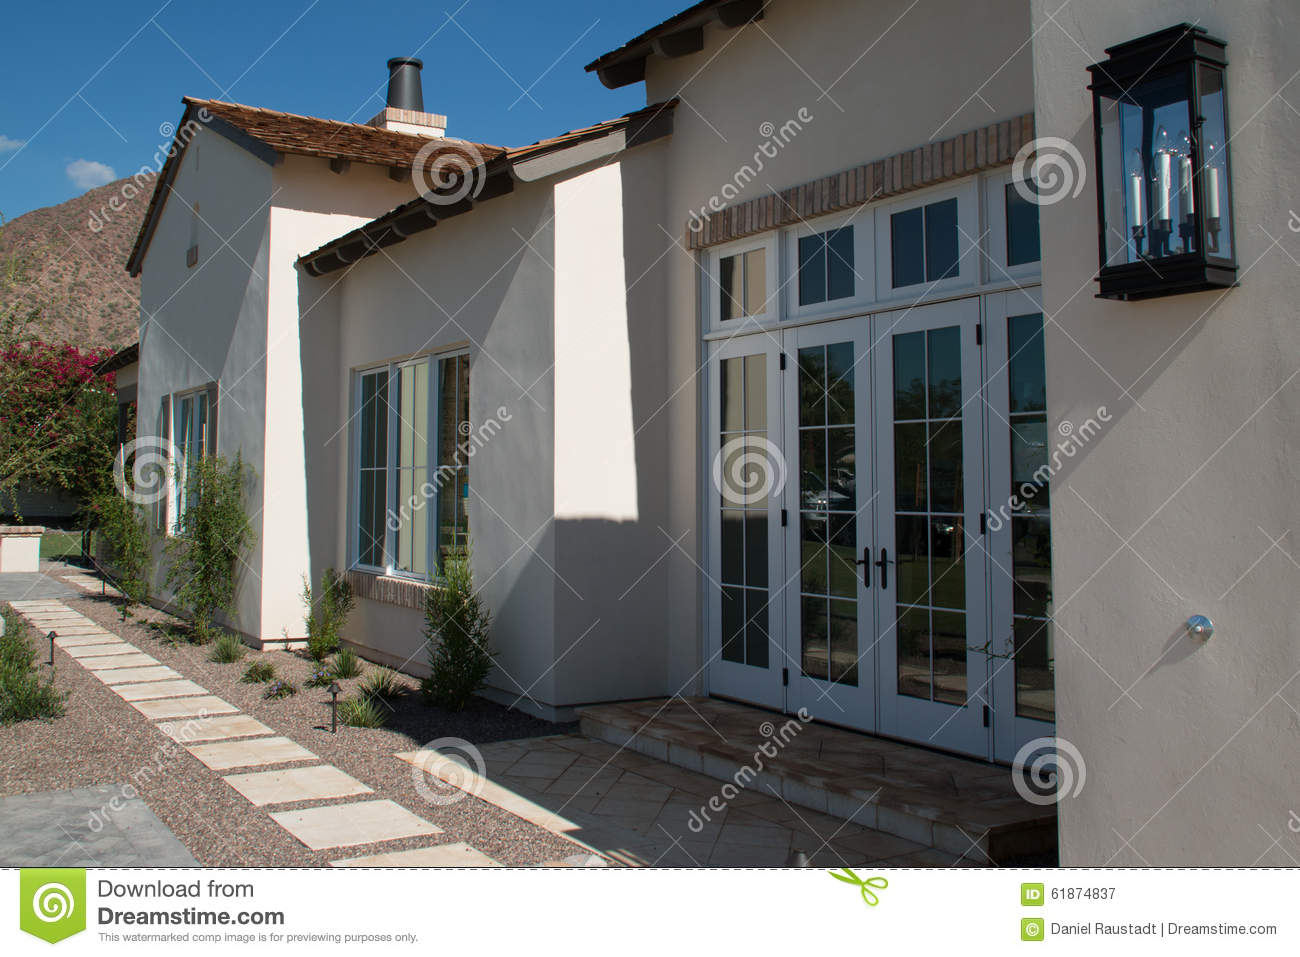 New large home exterior in the arizona desert stock photo for Building a house in arizona